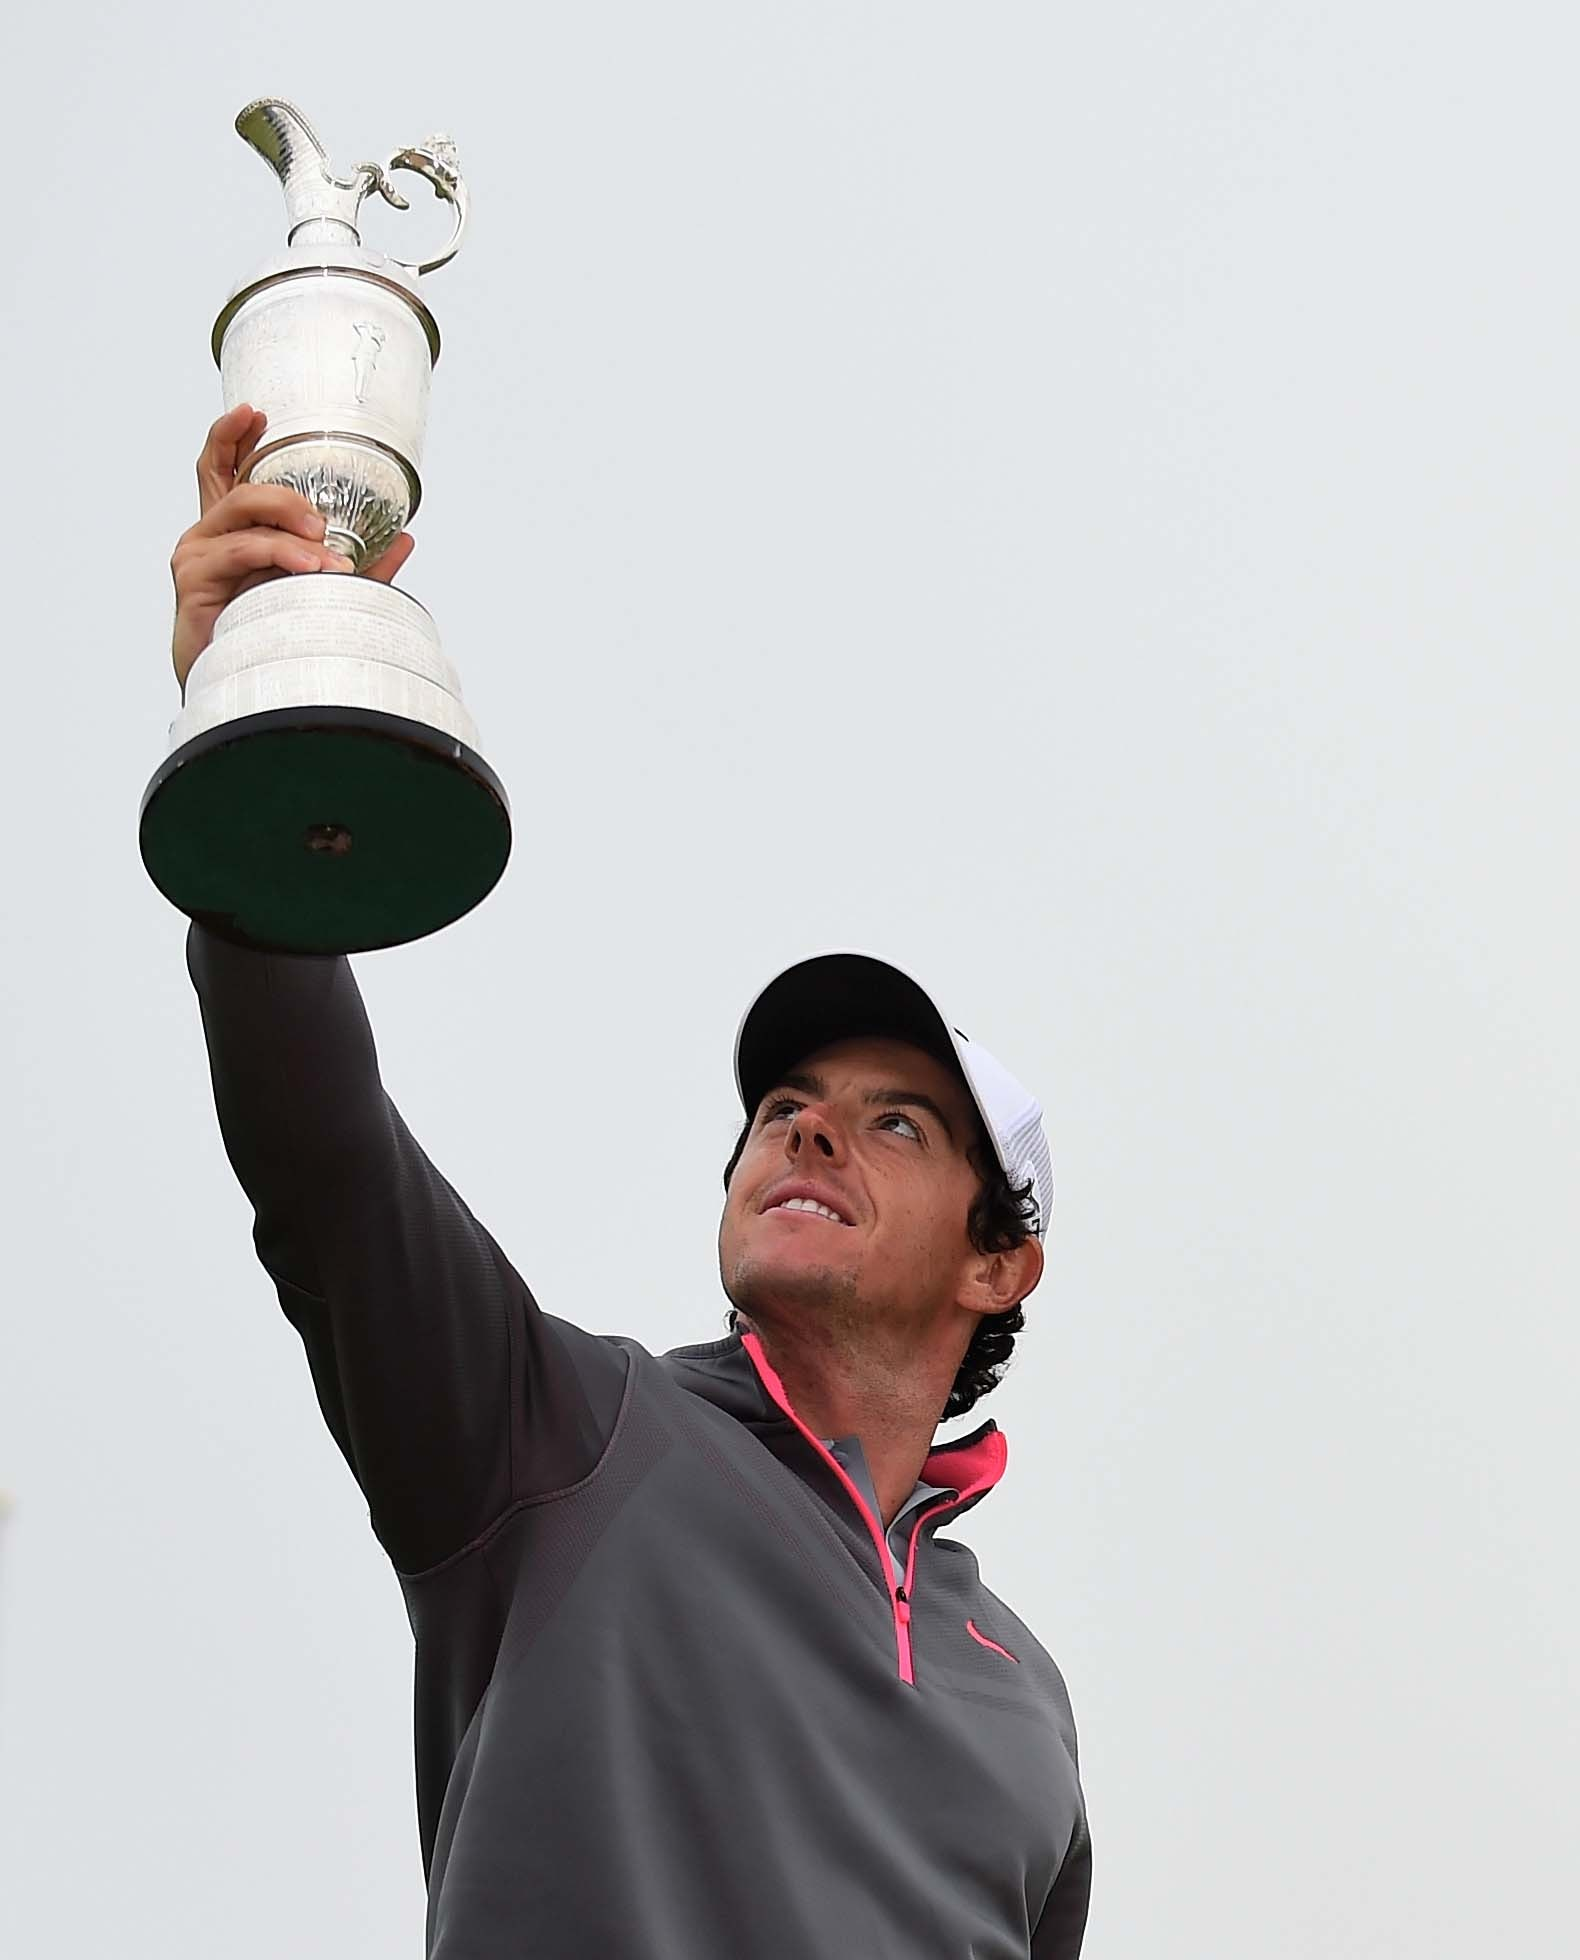 Rory McIlroy at the 2014 Open Championship